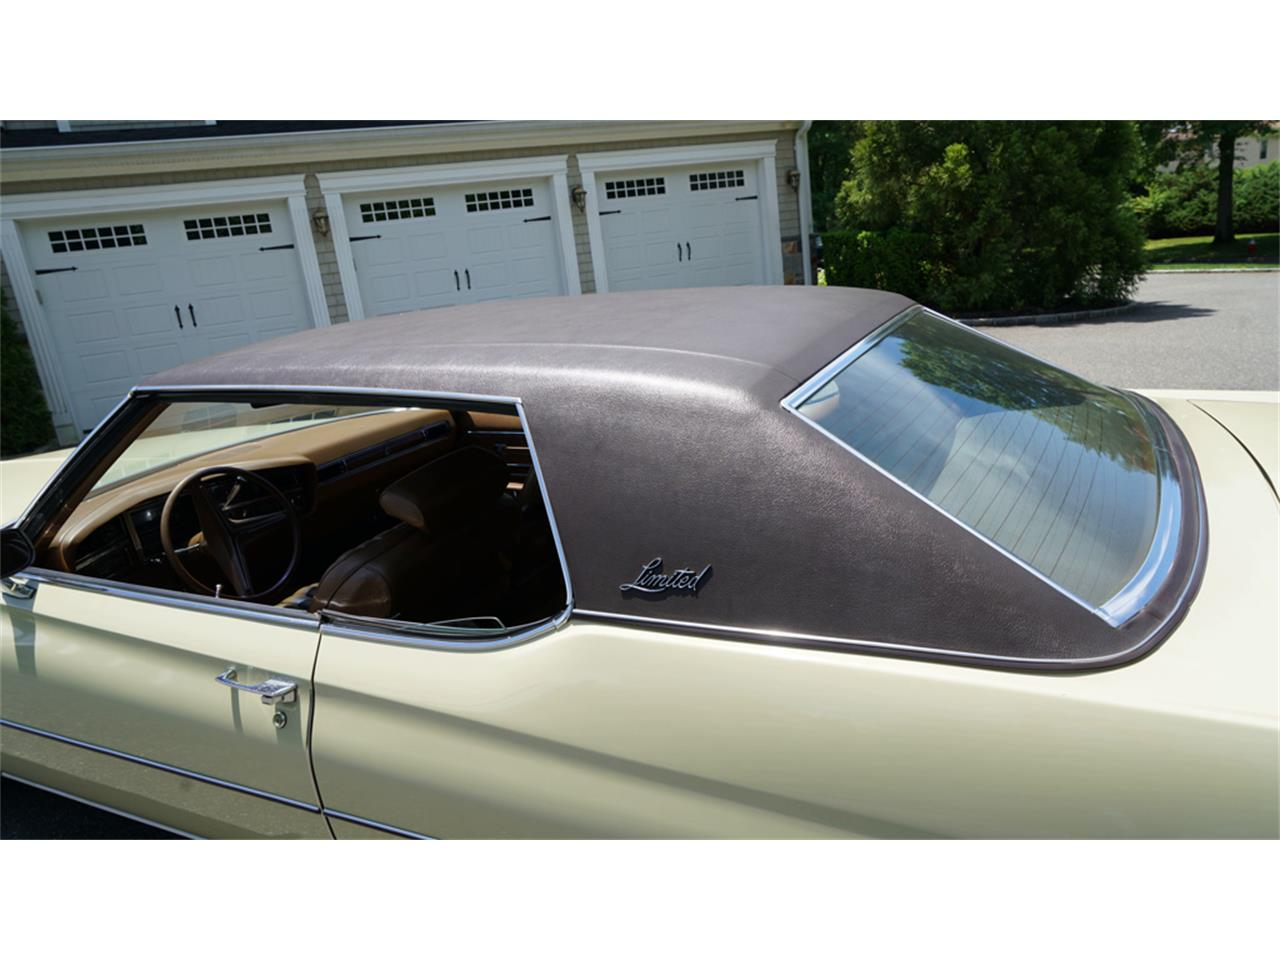 Large Picture of Classic 1972 Electra 225 located in Old Bethpage New York - $32,500.00 Offered by Fiore Motor Classics - QAJE